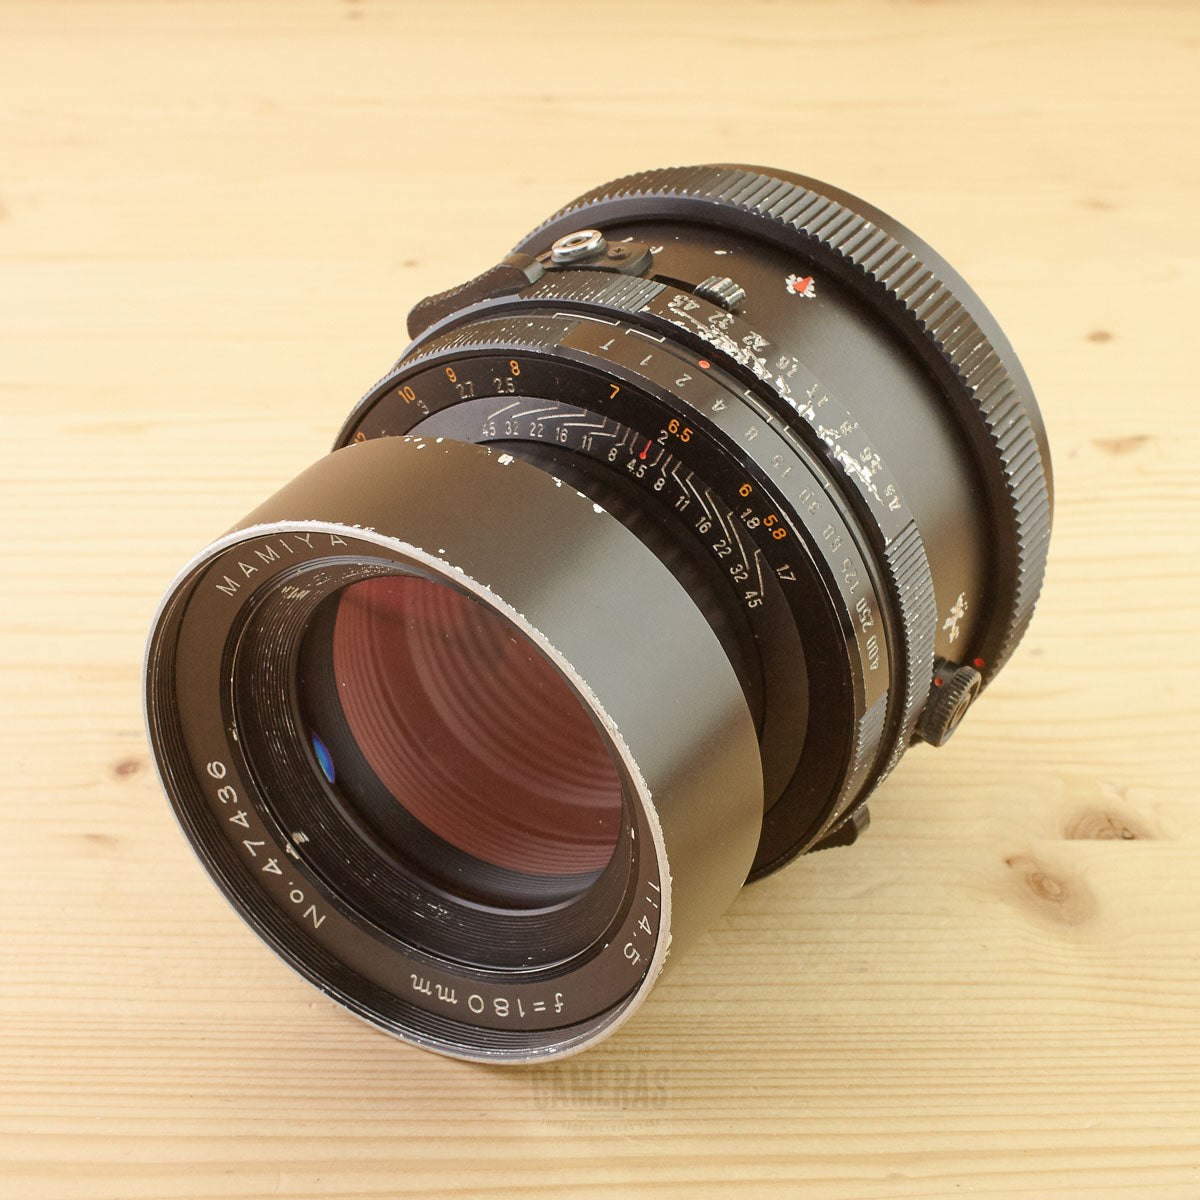 Mamiya RB67 180mm f/4.5 Ugly